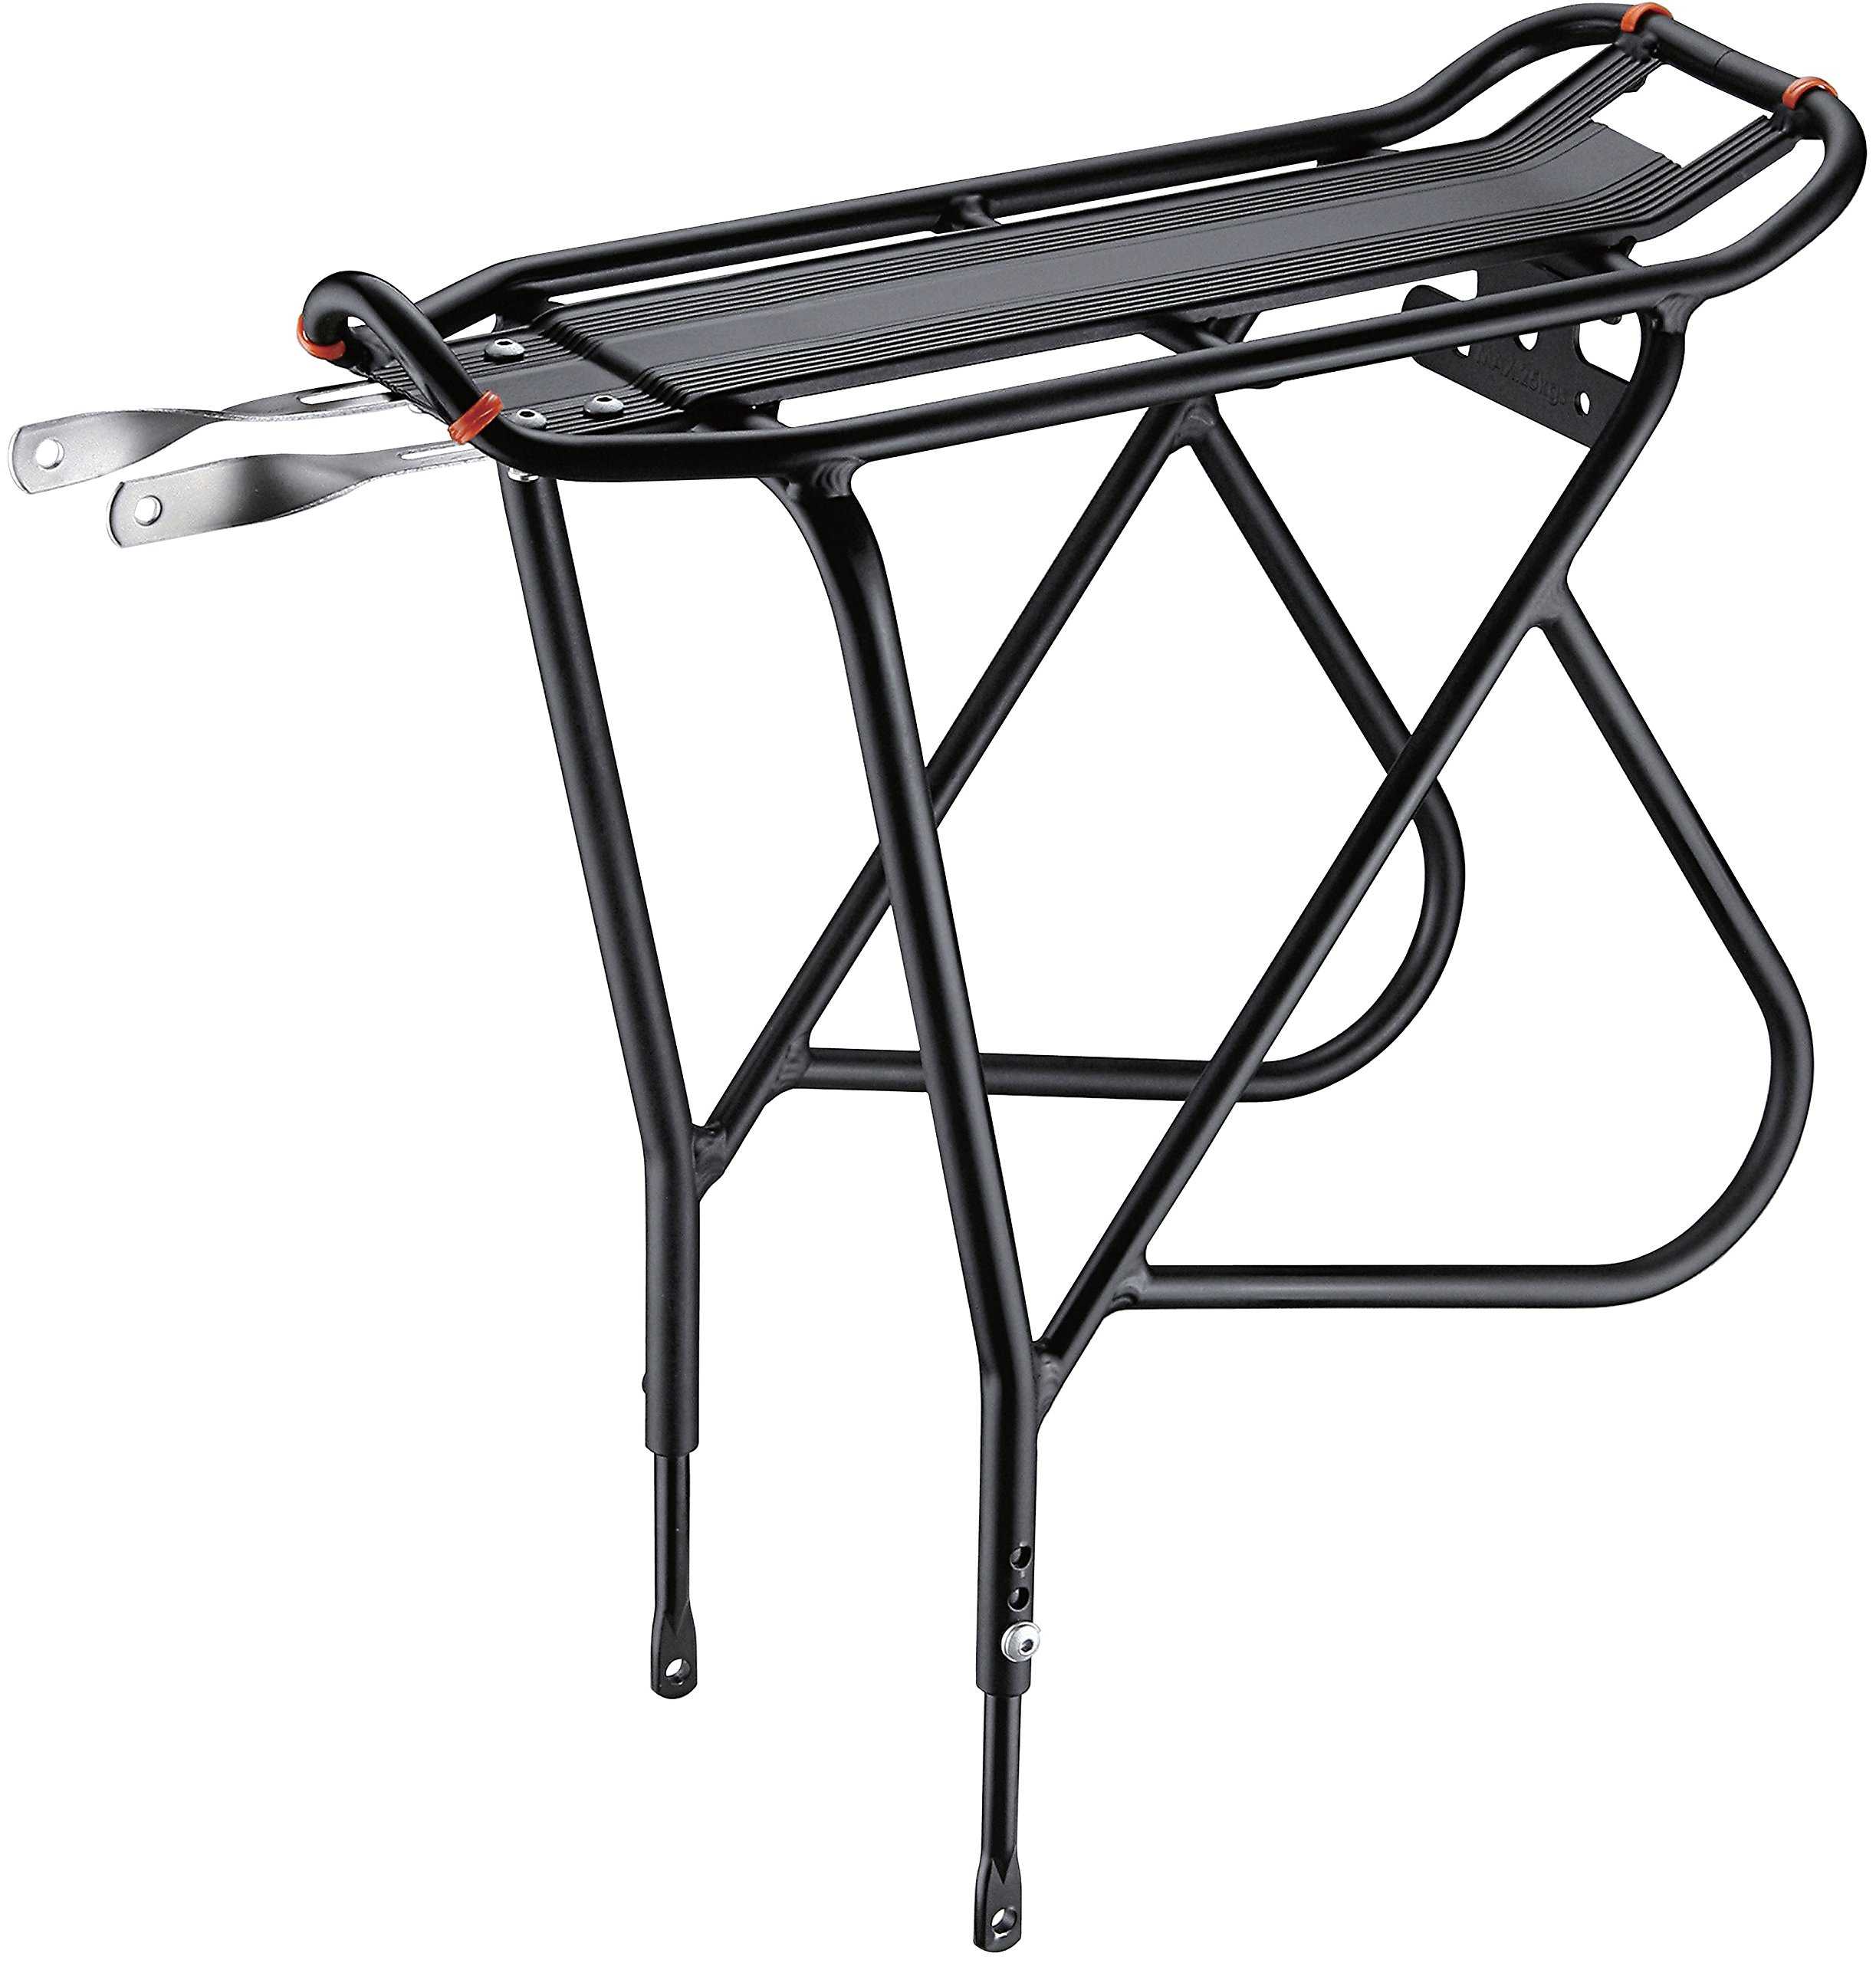 Ibera Bike Rack - Bicycle Touring Carrier with Fender Board, Frame-Mounted for Heavier Top & Side Loads, Height Adjustable for 26''-29'' Frames by Ibera (Image #1)